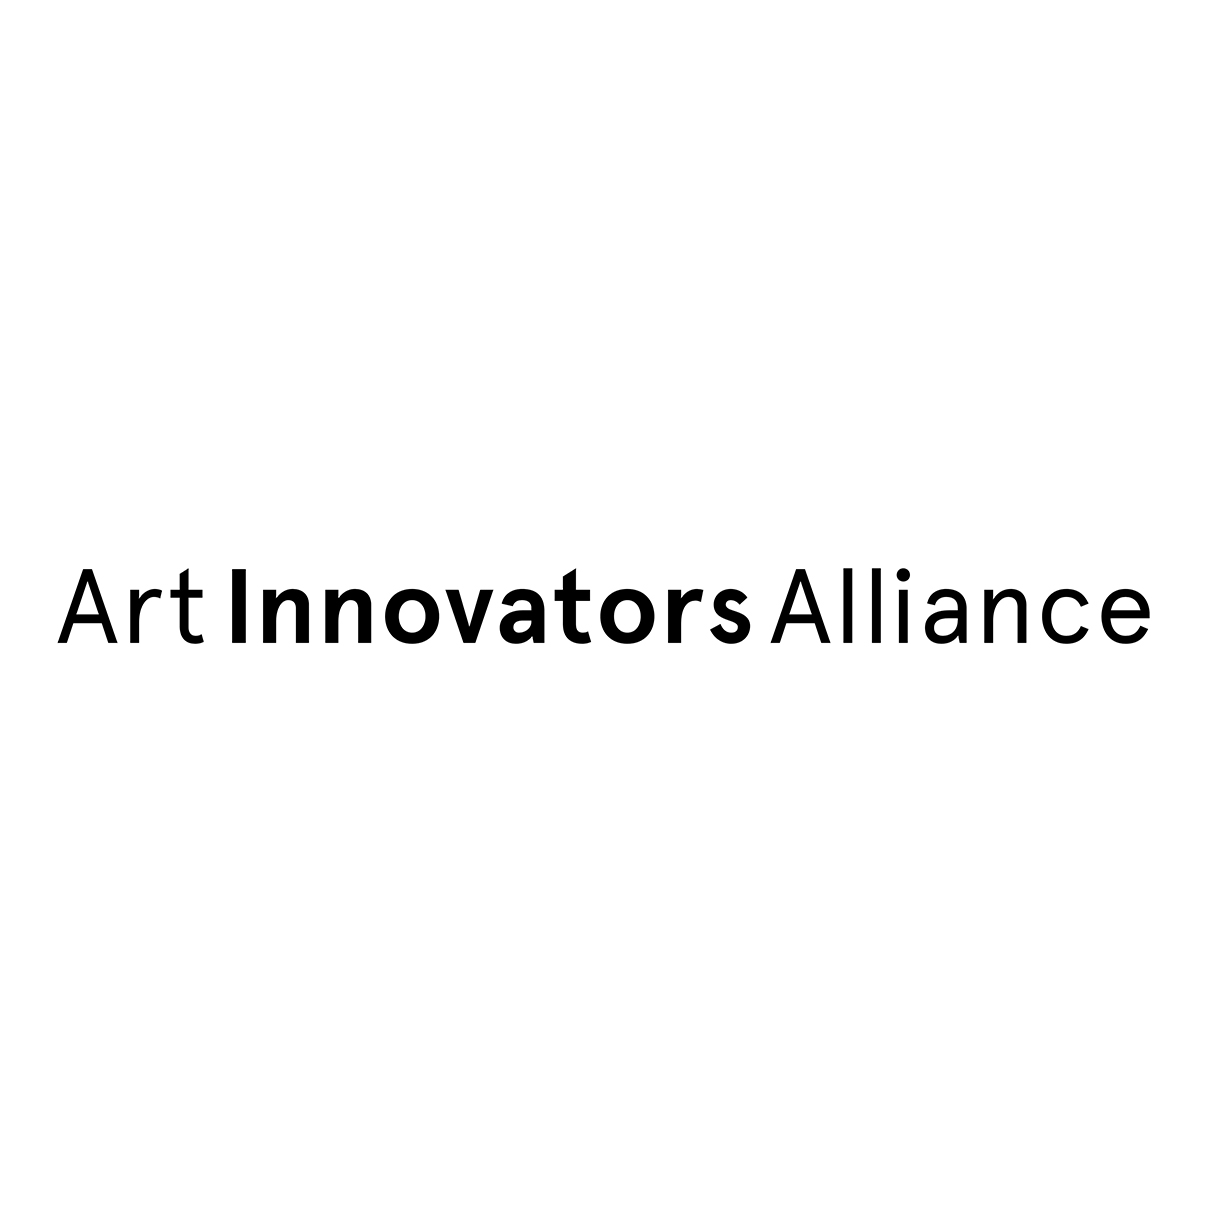 Art Innovators Alliance Tagsmart